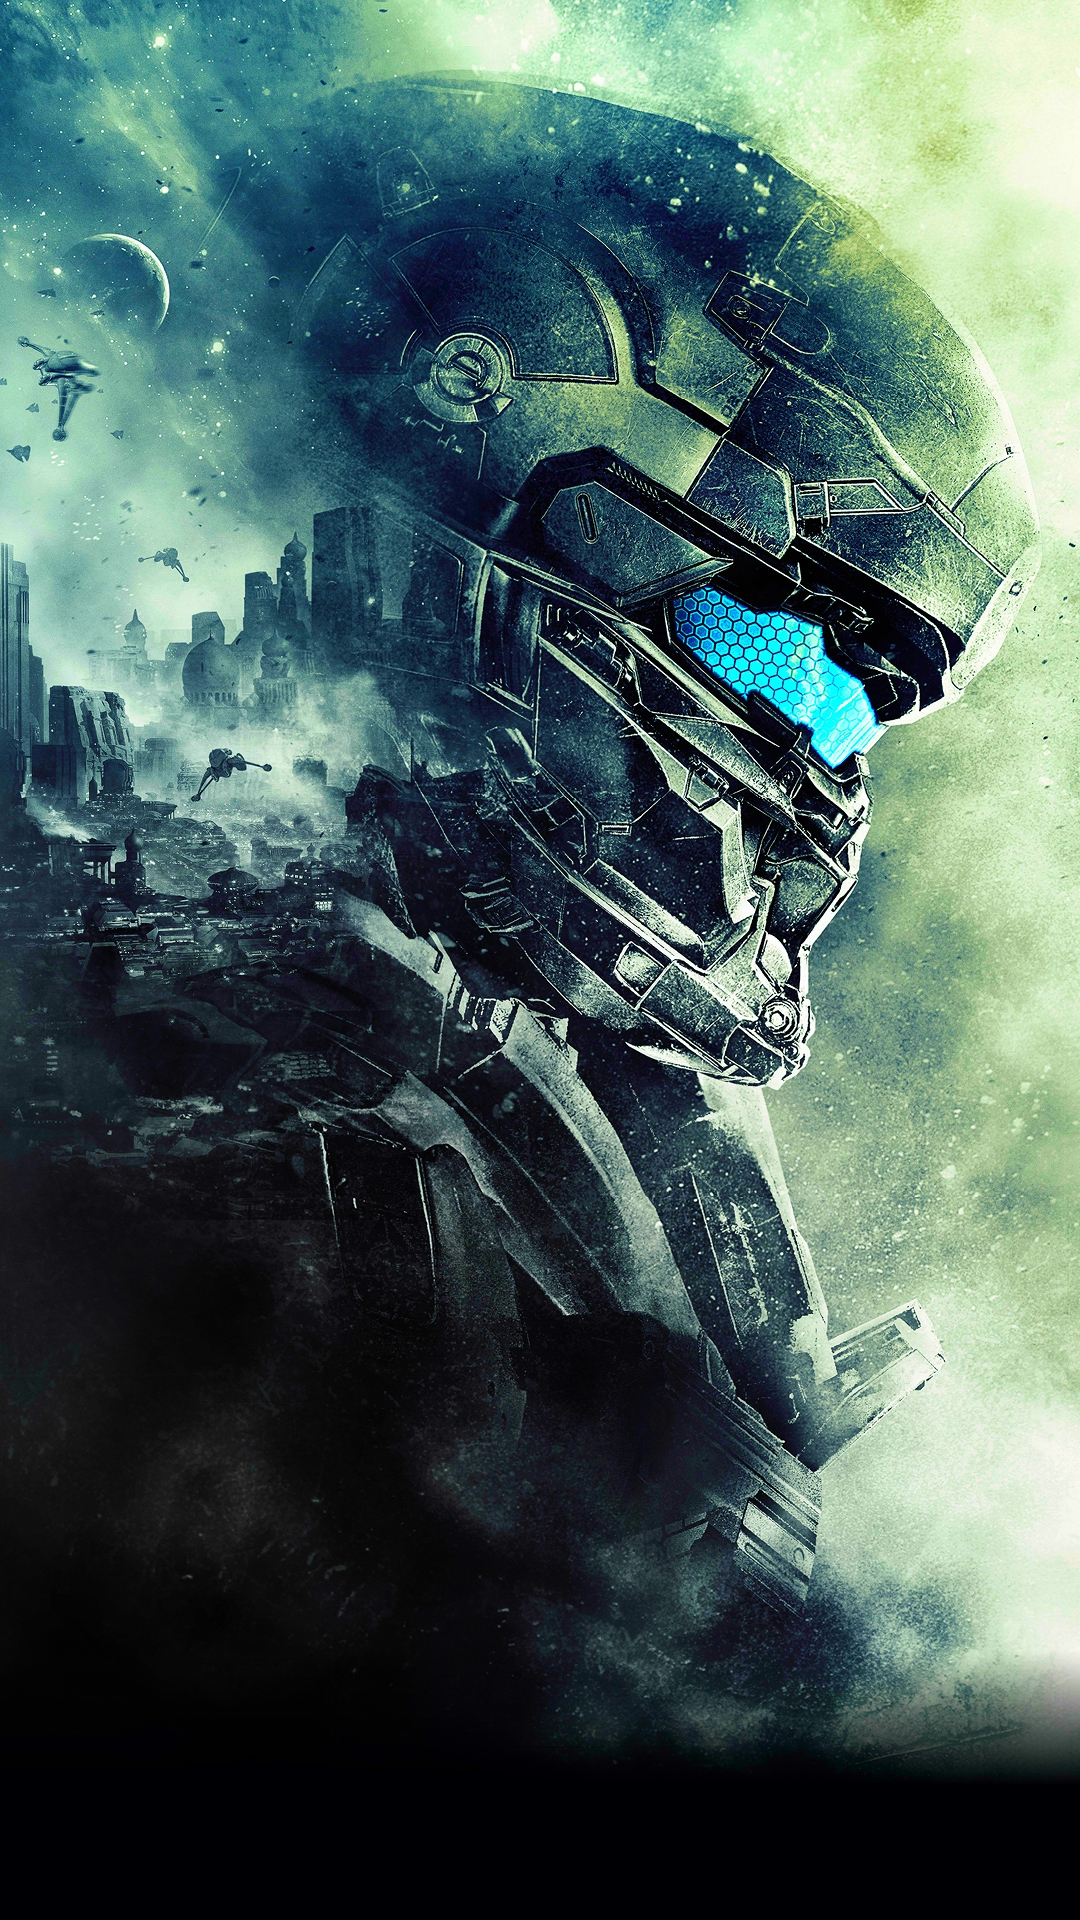 Master Chief Iphone Wallpaper Halo 5 Wallpaper Iphone